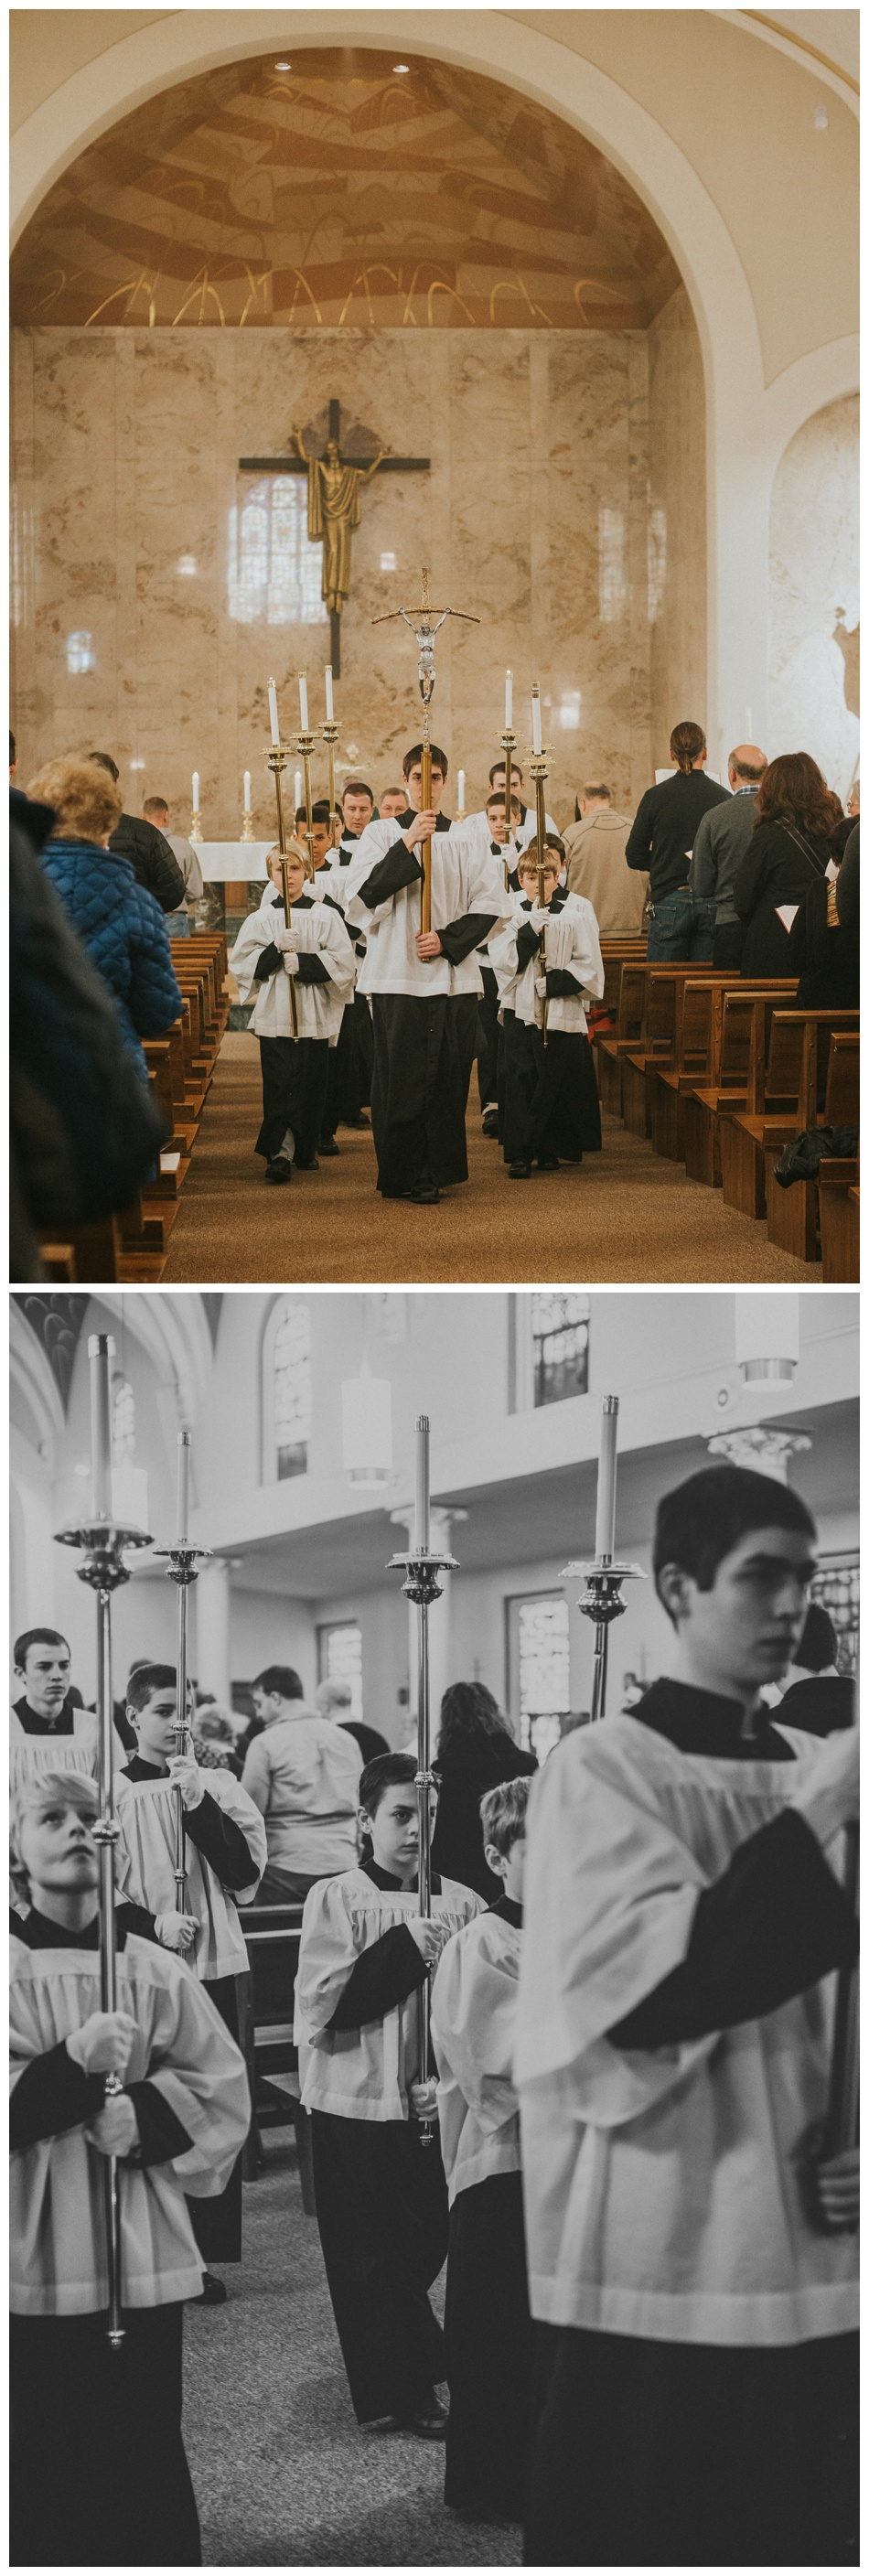 Alter boys walking with candles at Mass